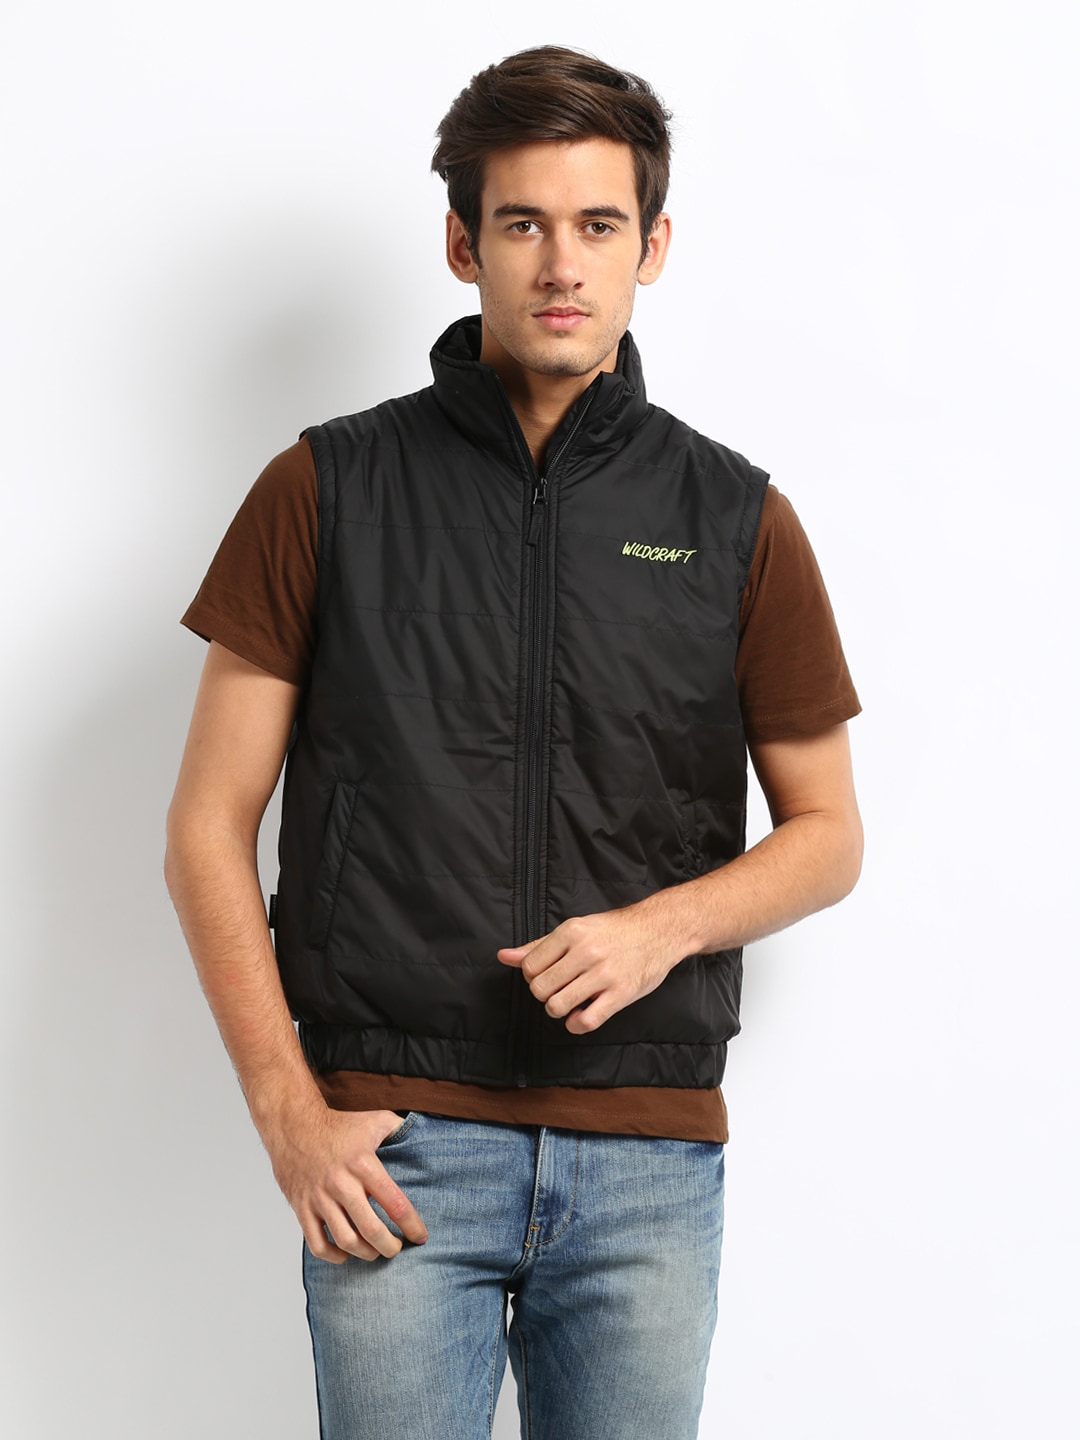 1a2f4b939e9c1 Wildcraft Jackets Bags - Buy Wildcraft Jackets Bags online in India